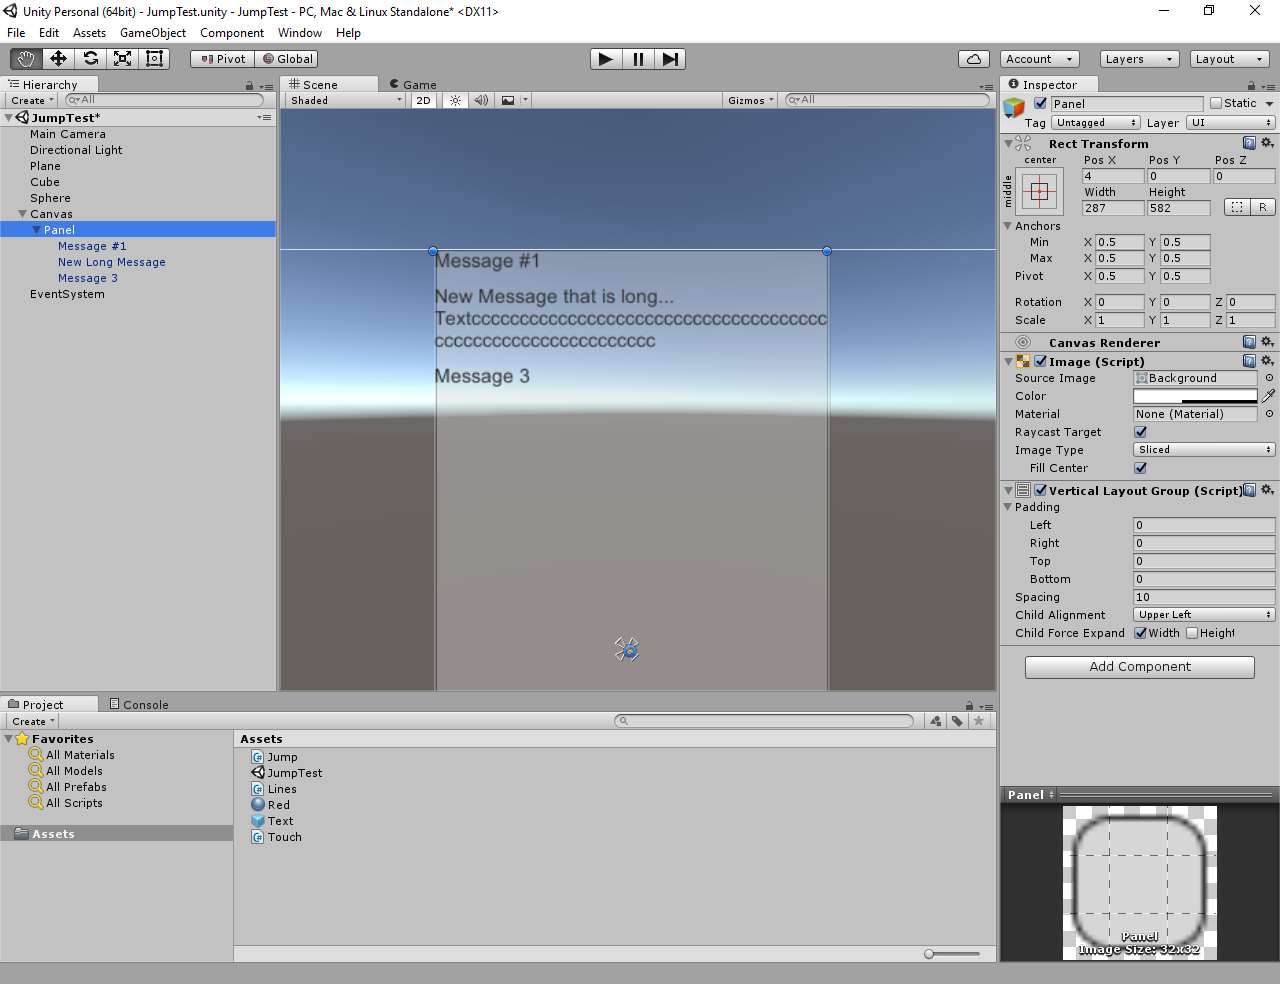 Problems handling Scroll View for a simple chat - Unity Forum